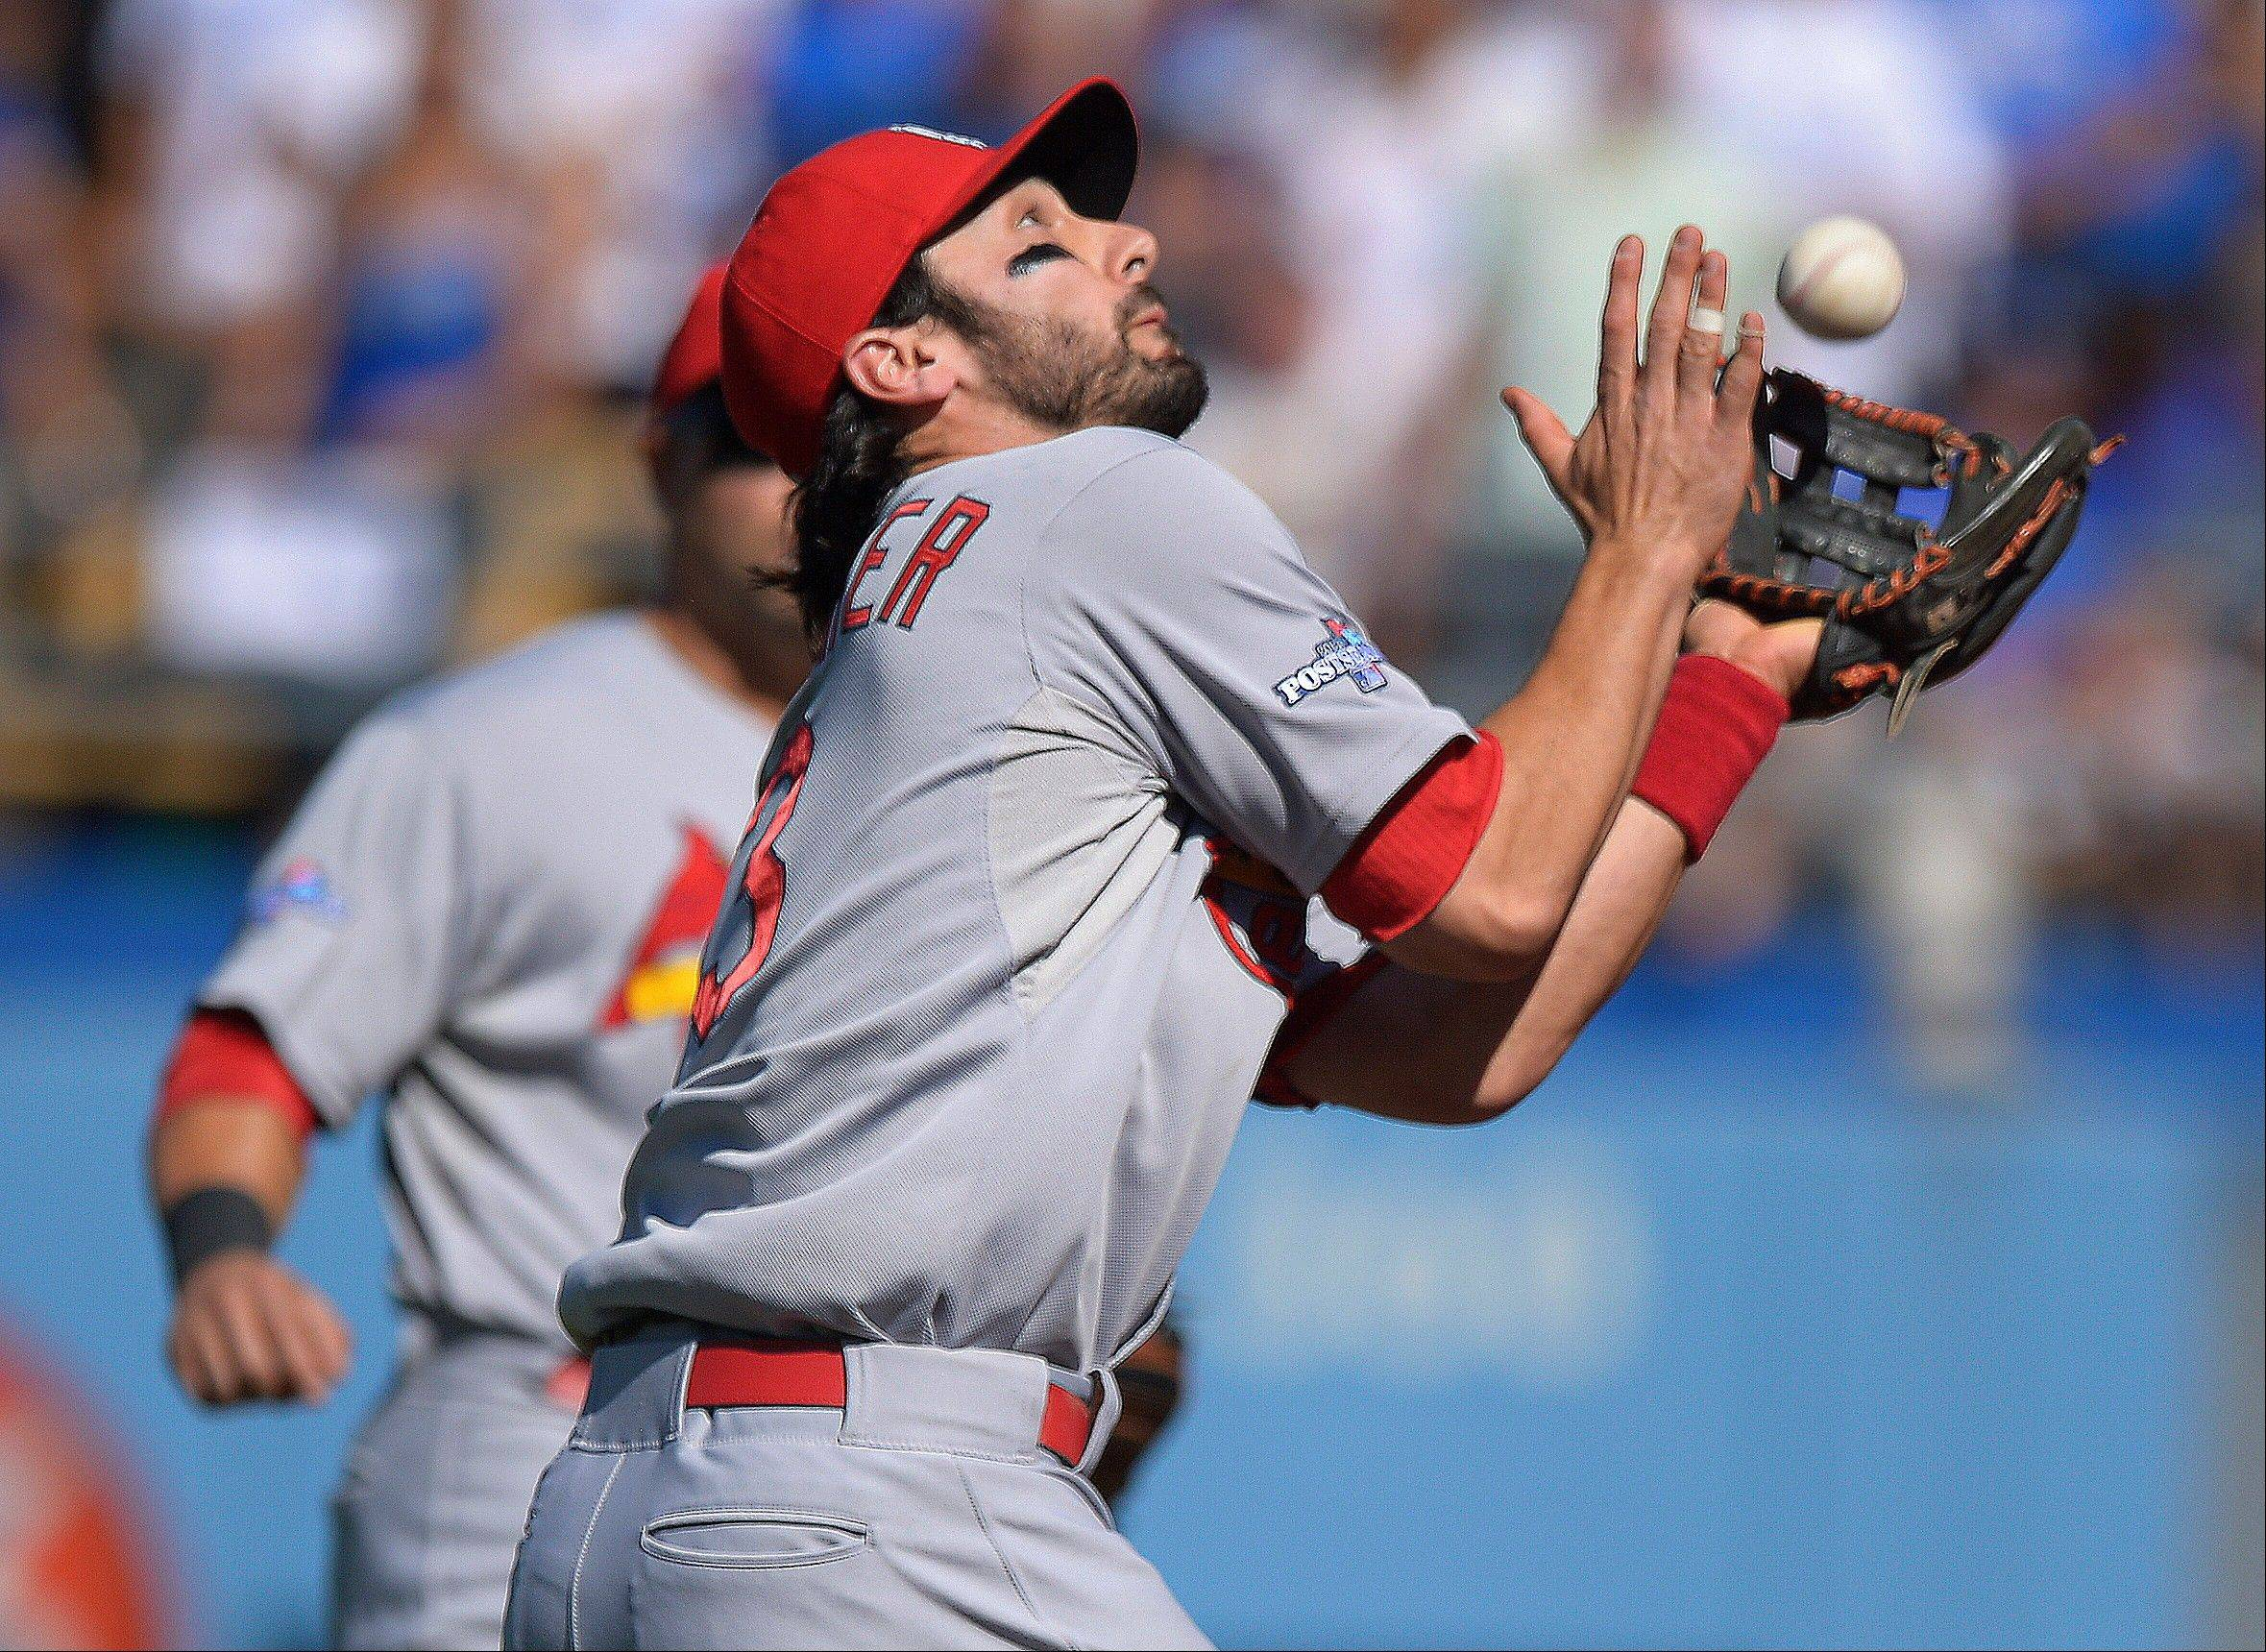 The Cardinals' Matt Carpenter catches a ball hit by the Dodgers' Nick Punto during the second inning of Game 5.